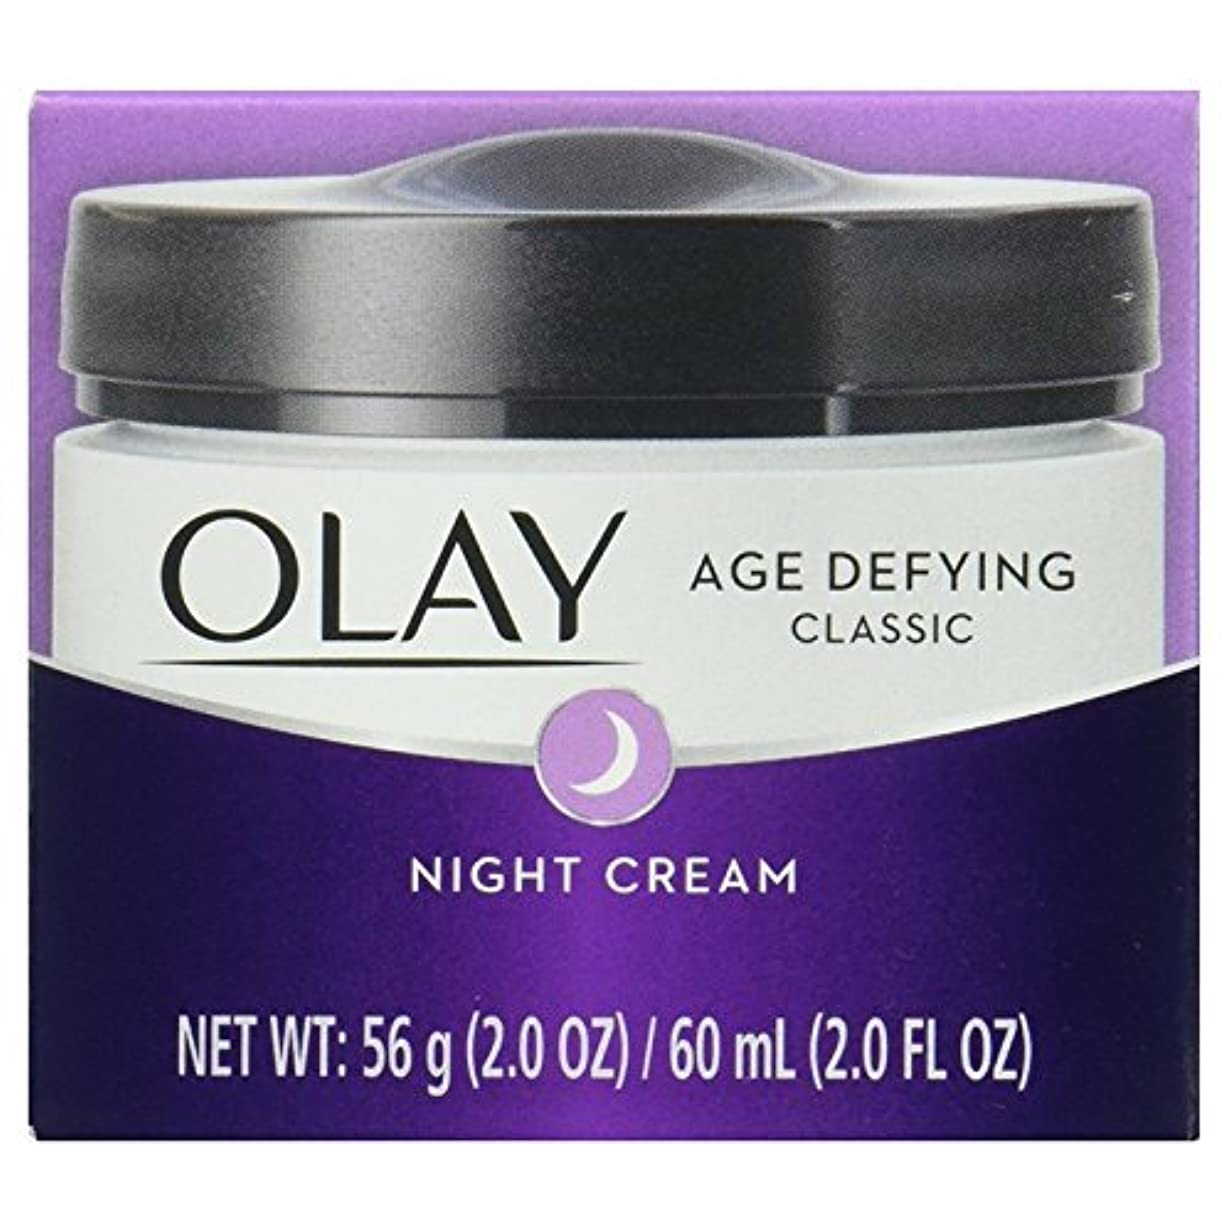 Olay Age Defying intensive nourshing night cream (並行輸入品)